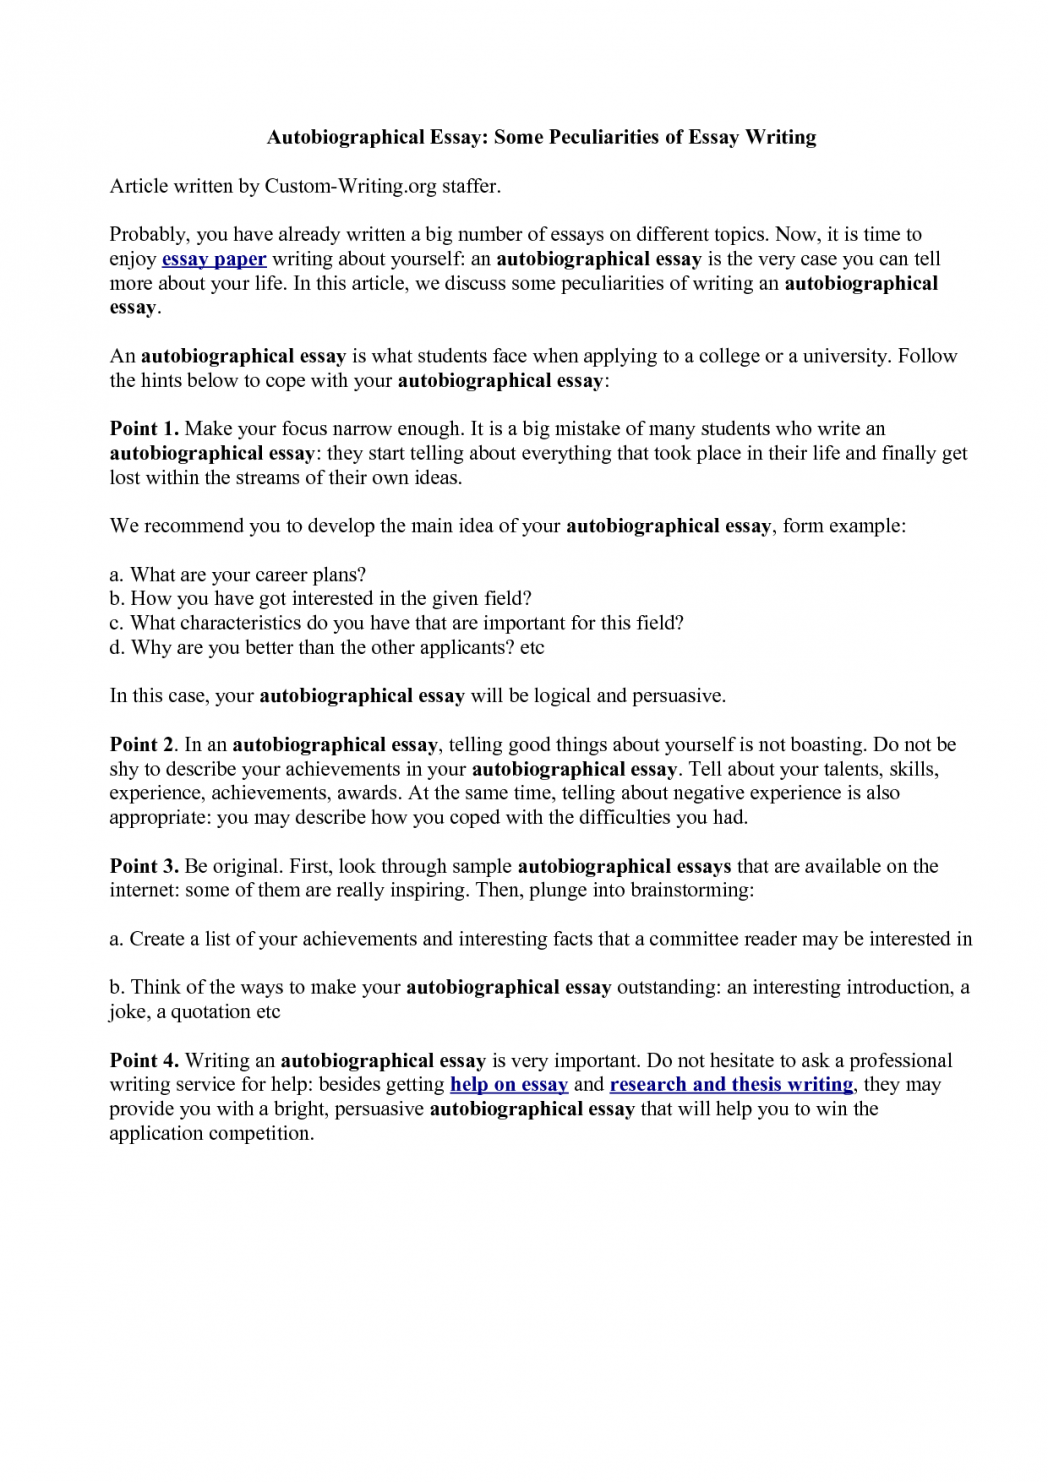 005 How To Start Autobiography Essay Example Of Telling About Yourself Shawn Weatherly Writing An Luxury Write Autobiographical For Job Written Graduate School Outline Singular Annotated Bibliography Examples A Good Scholarship Full